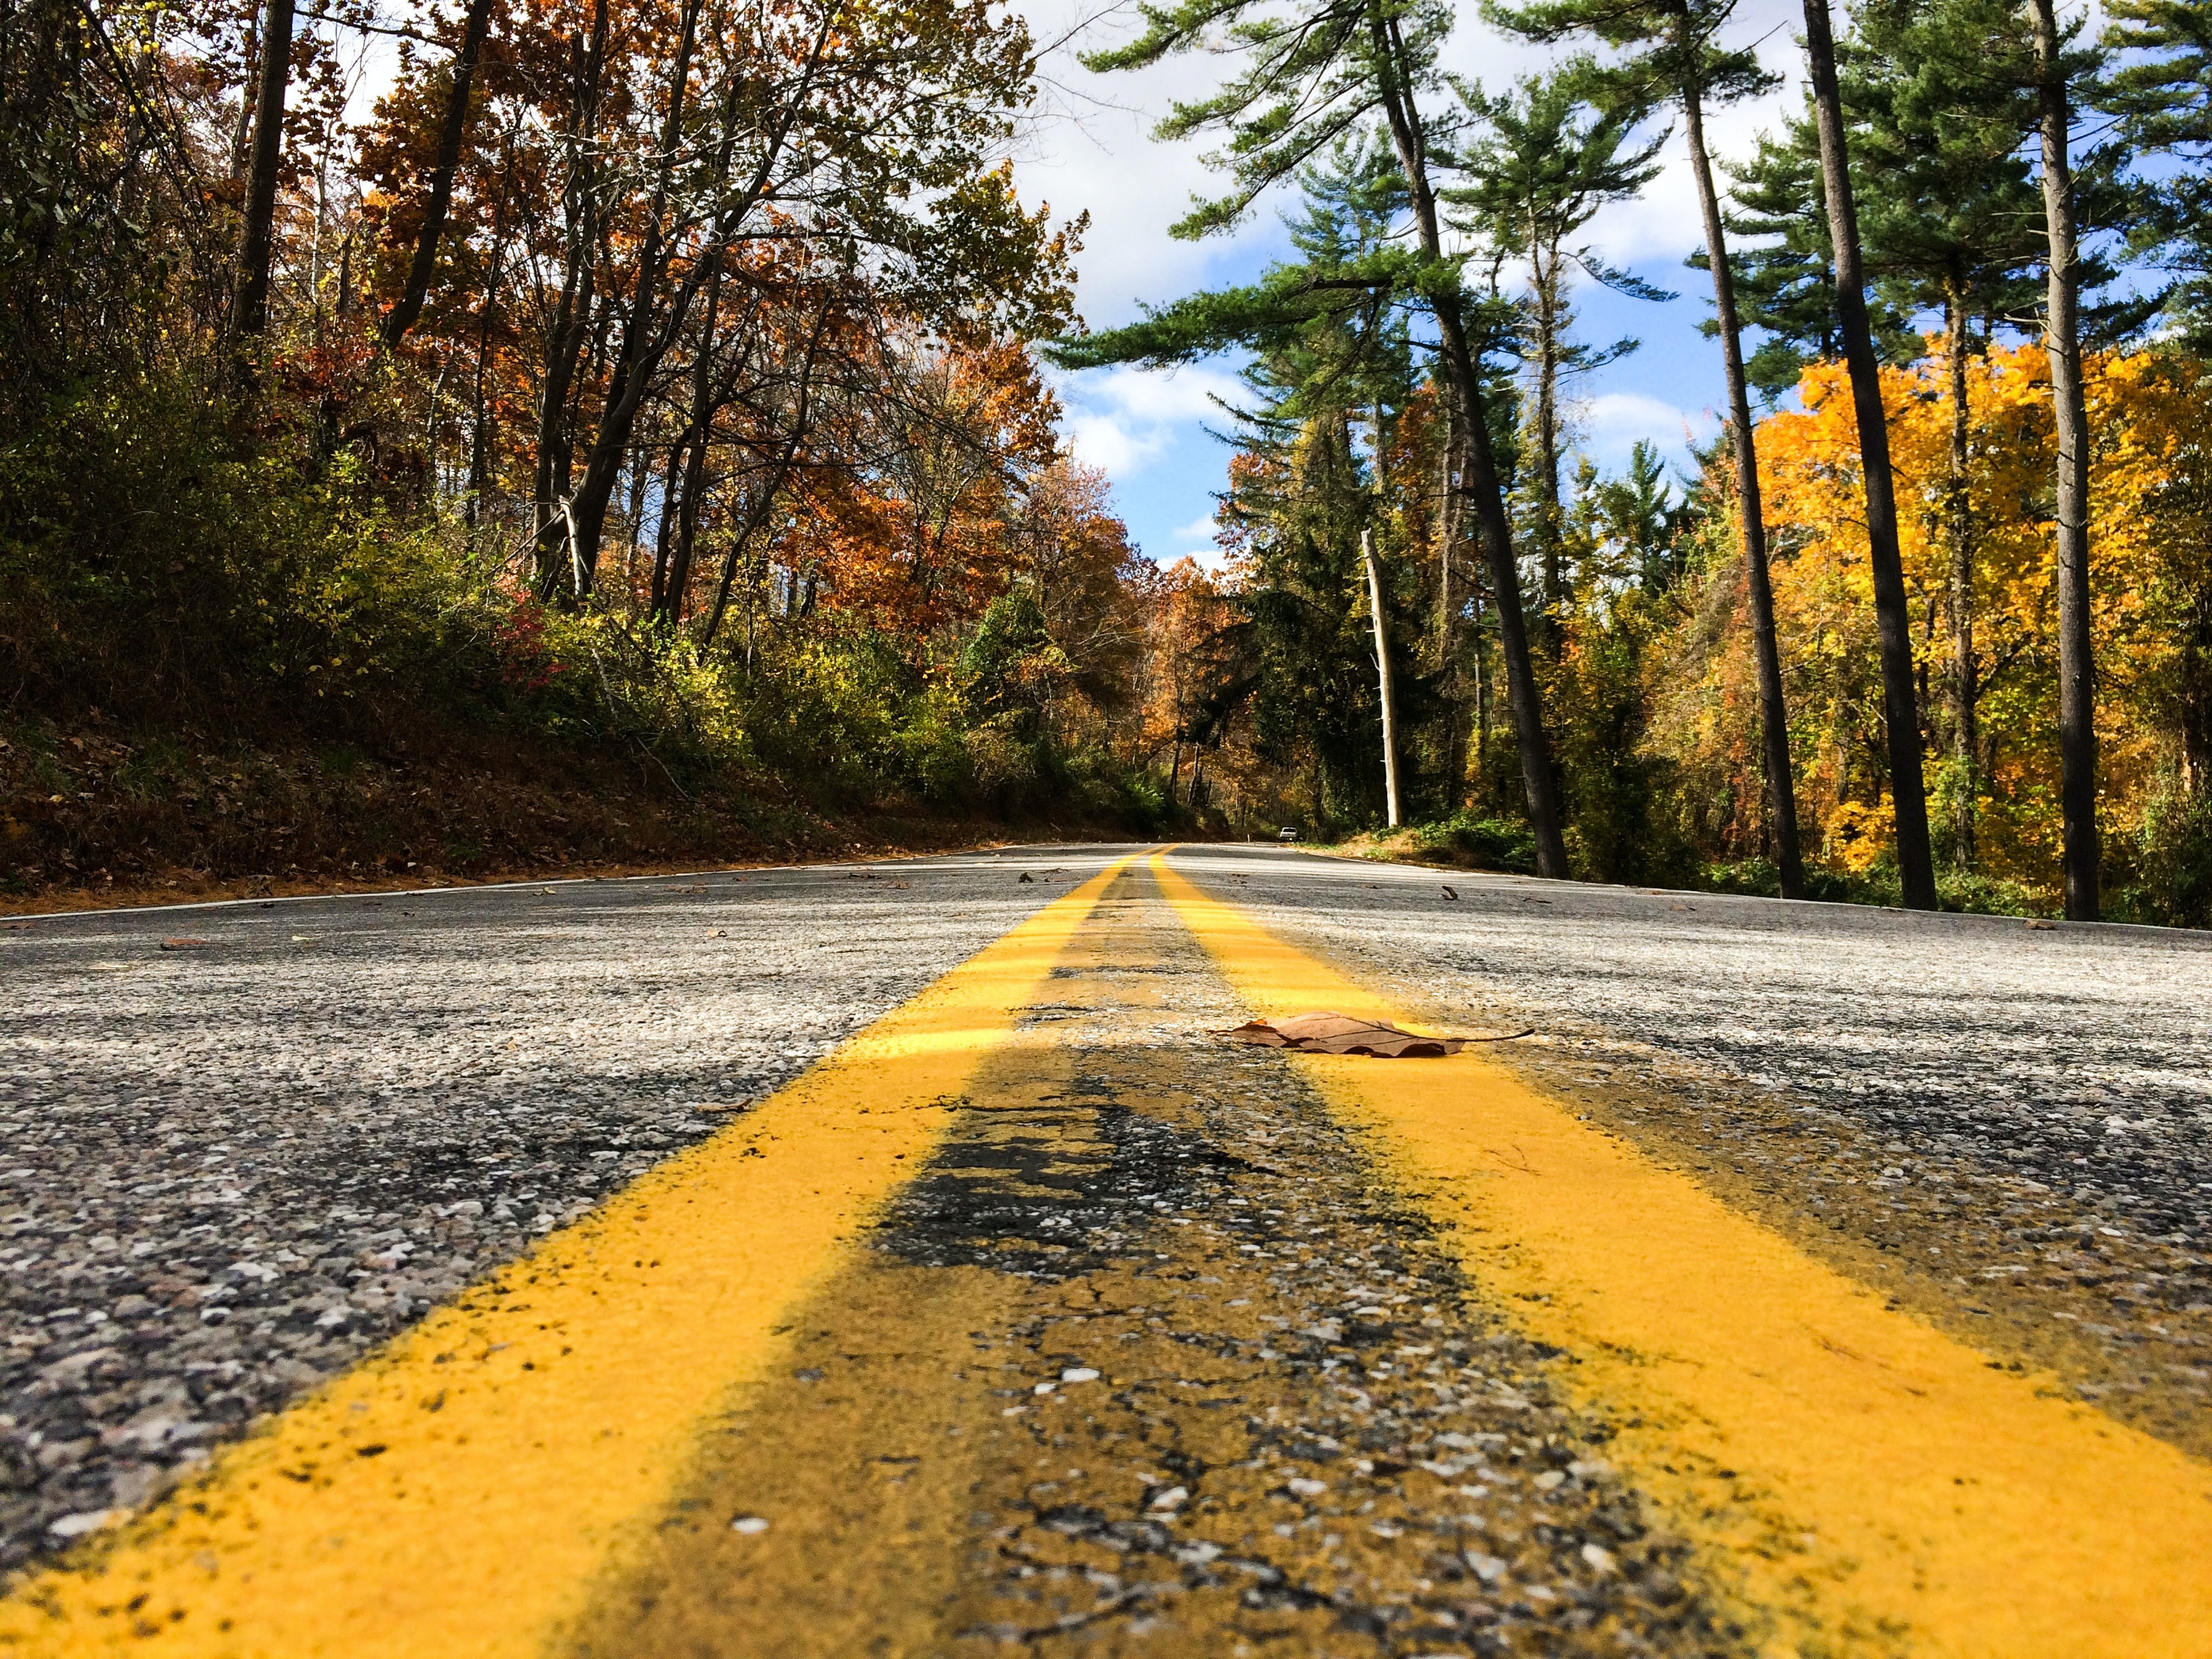 A low-angle shot of an empty asphalt road with several autumn leaves on it